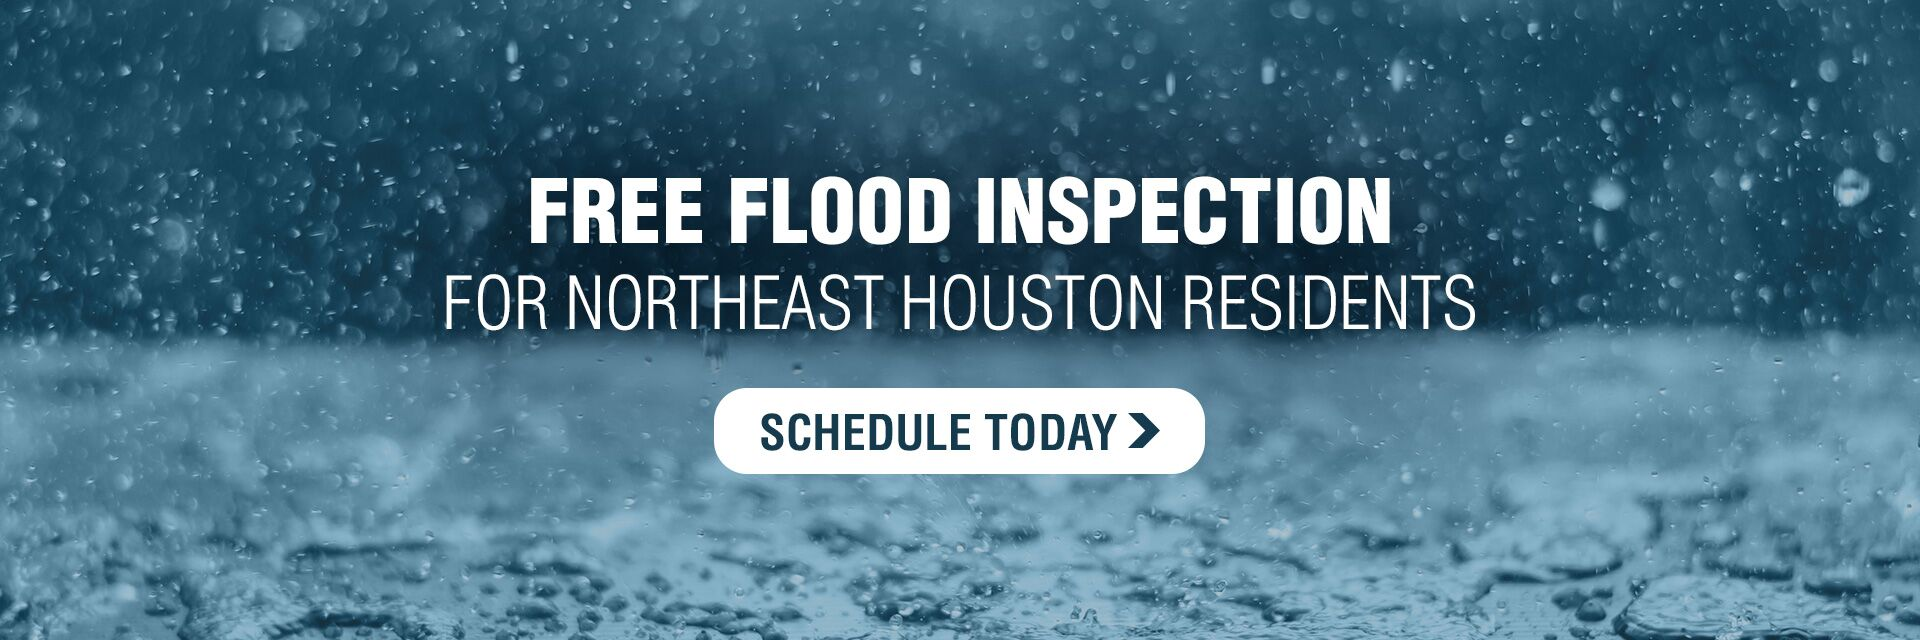 Free Flood Inspection